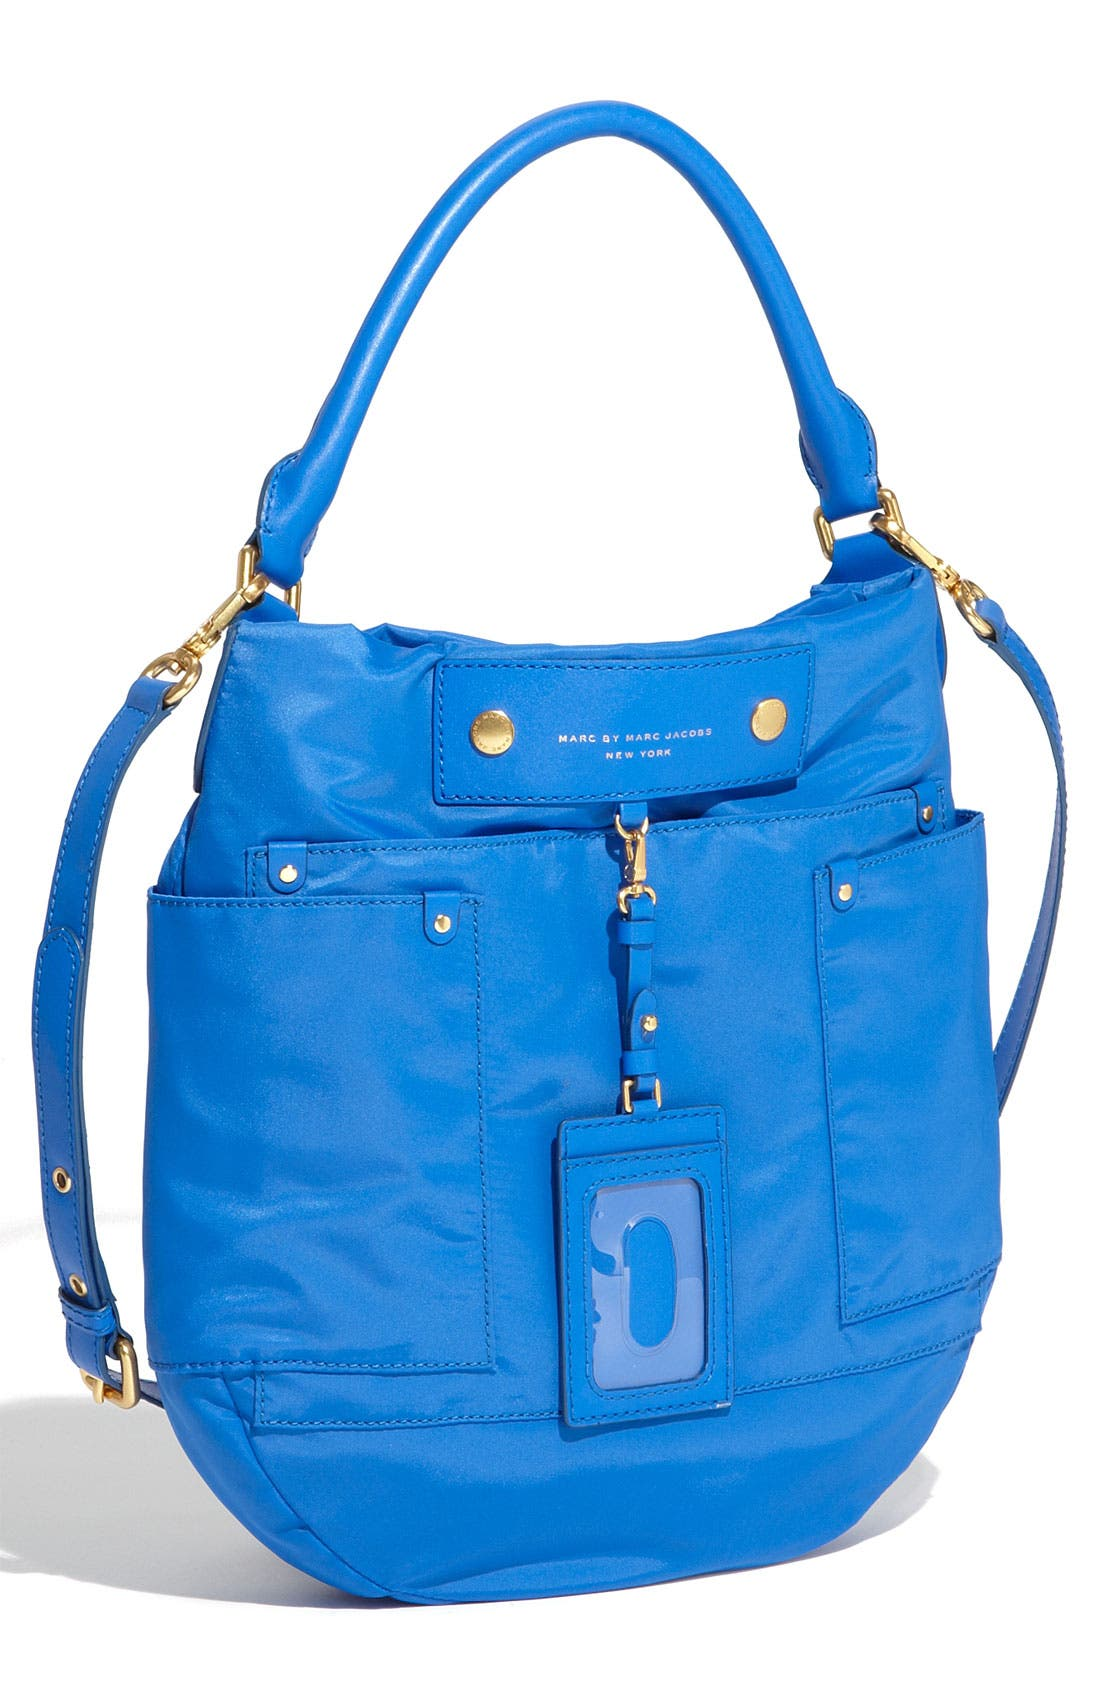 Main Image - MARC BY MARC JACOBS 'Preppy Nylon Hillier' Hobo